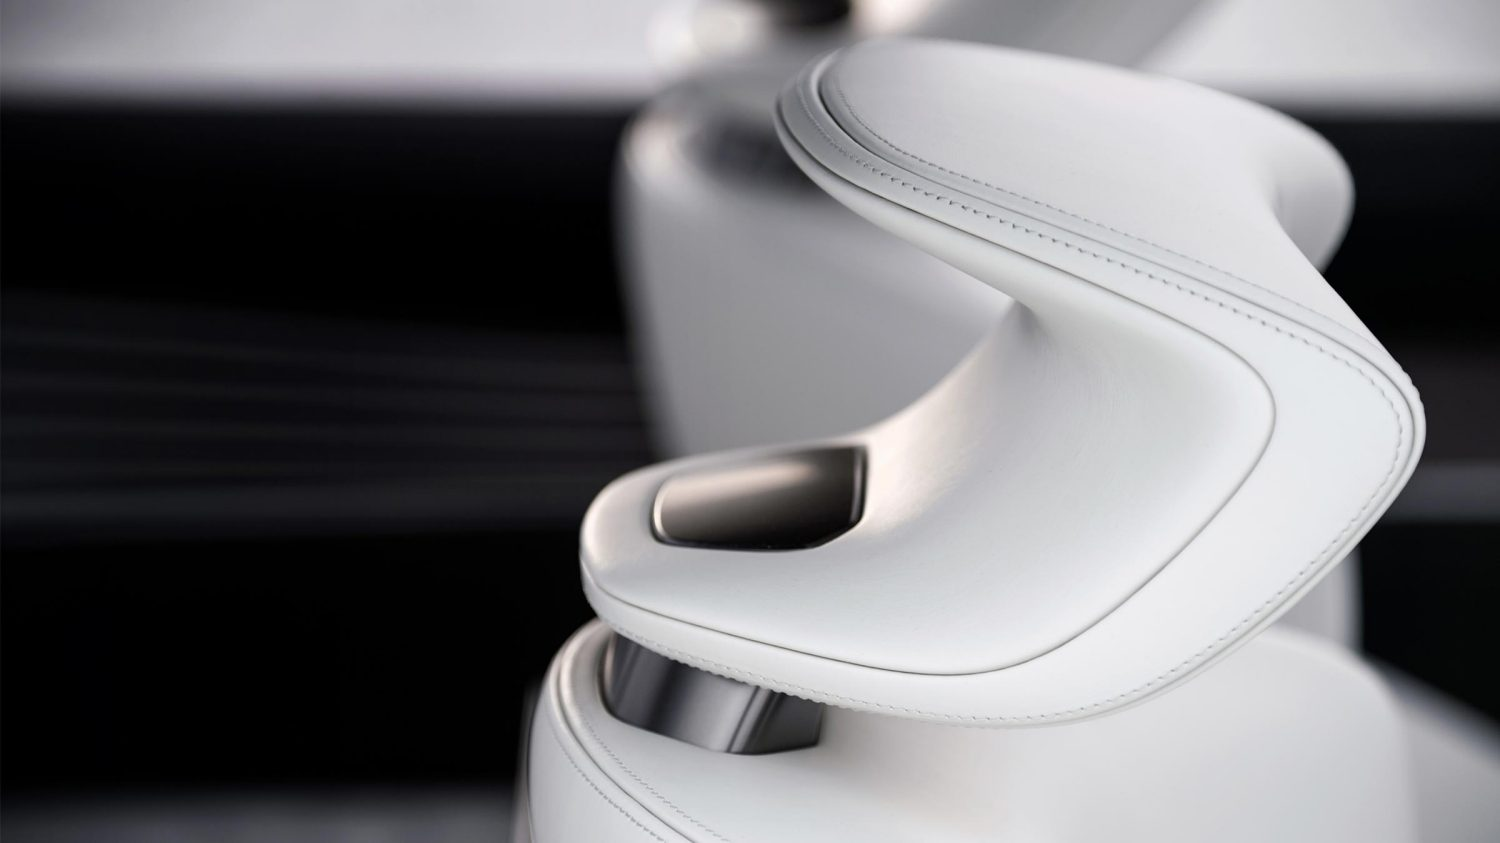 INFINITI Q Inspiration Sedan Headrest